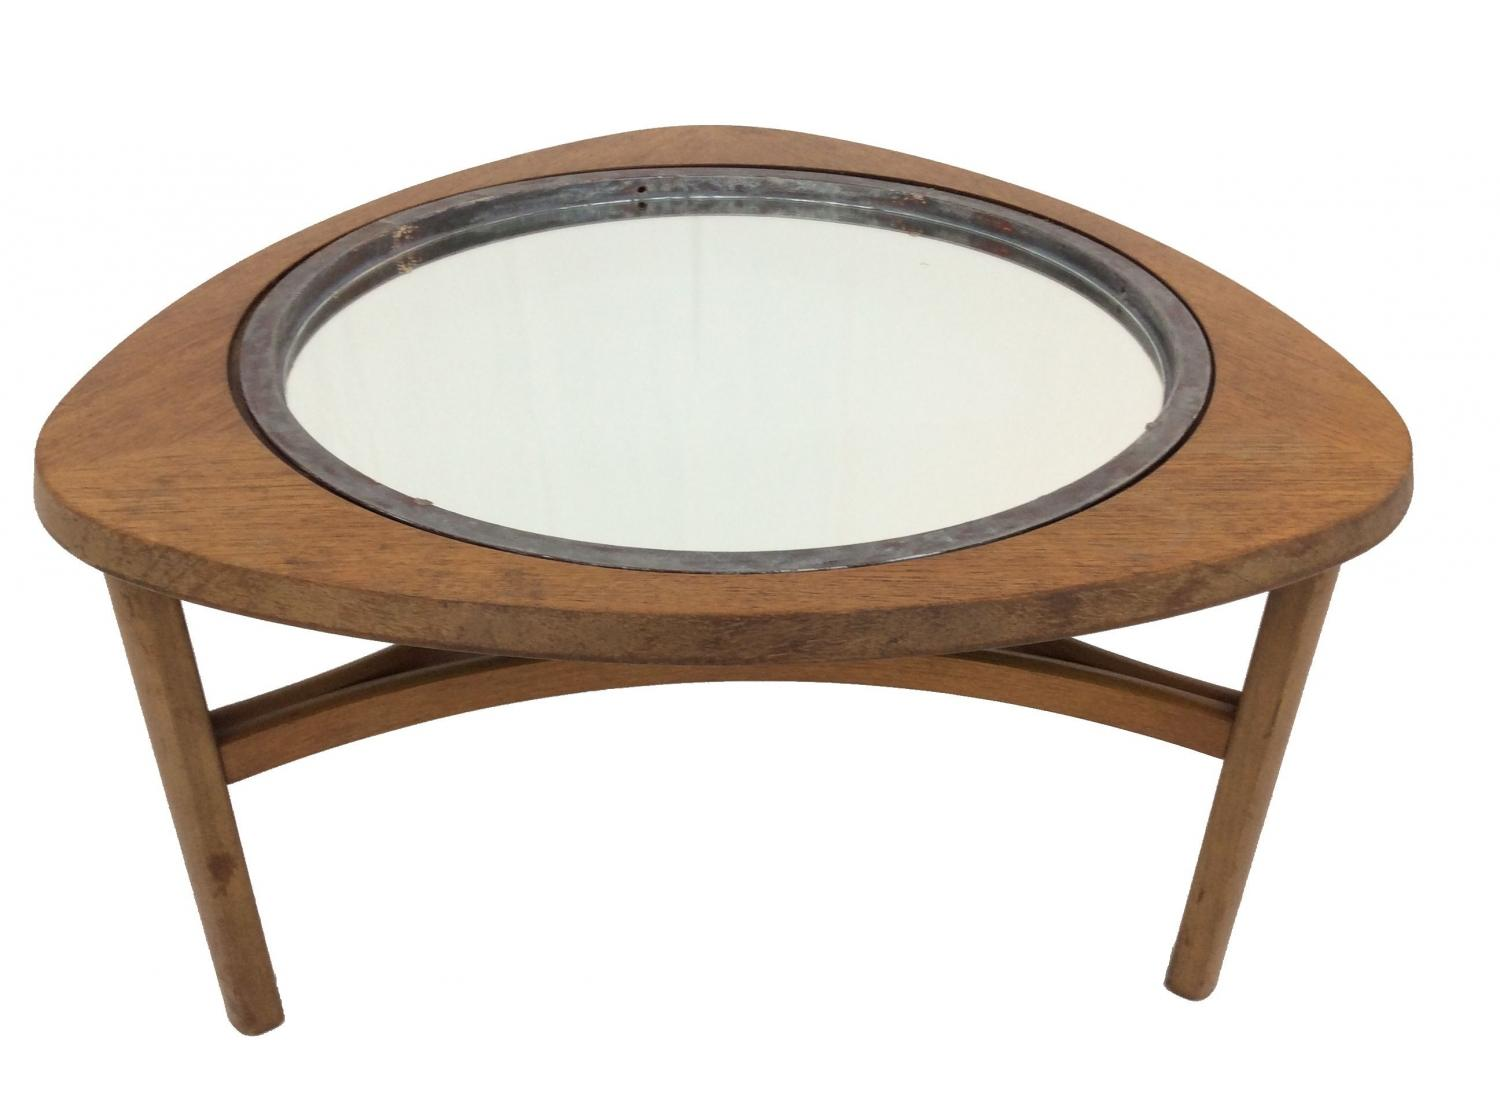 Nathan Table with Porthole Mirror